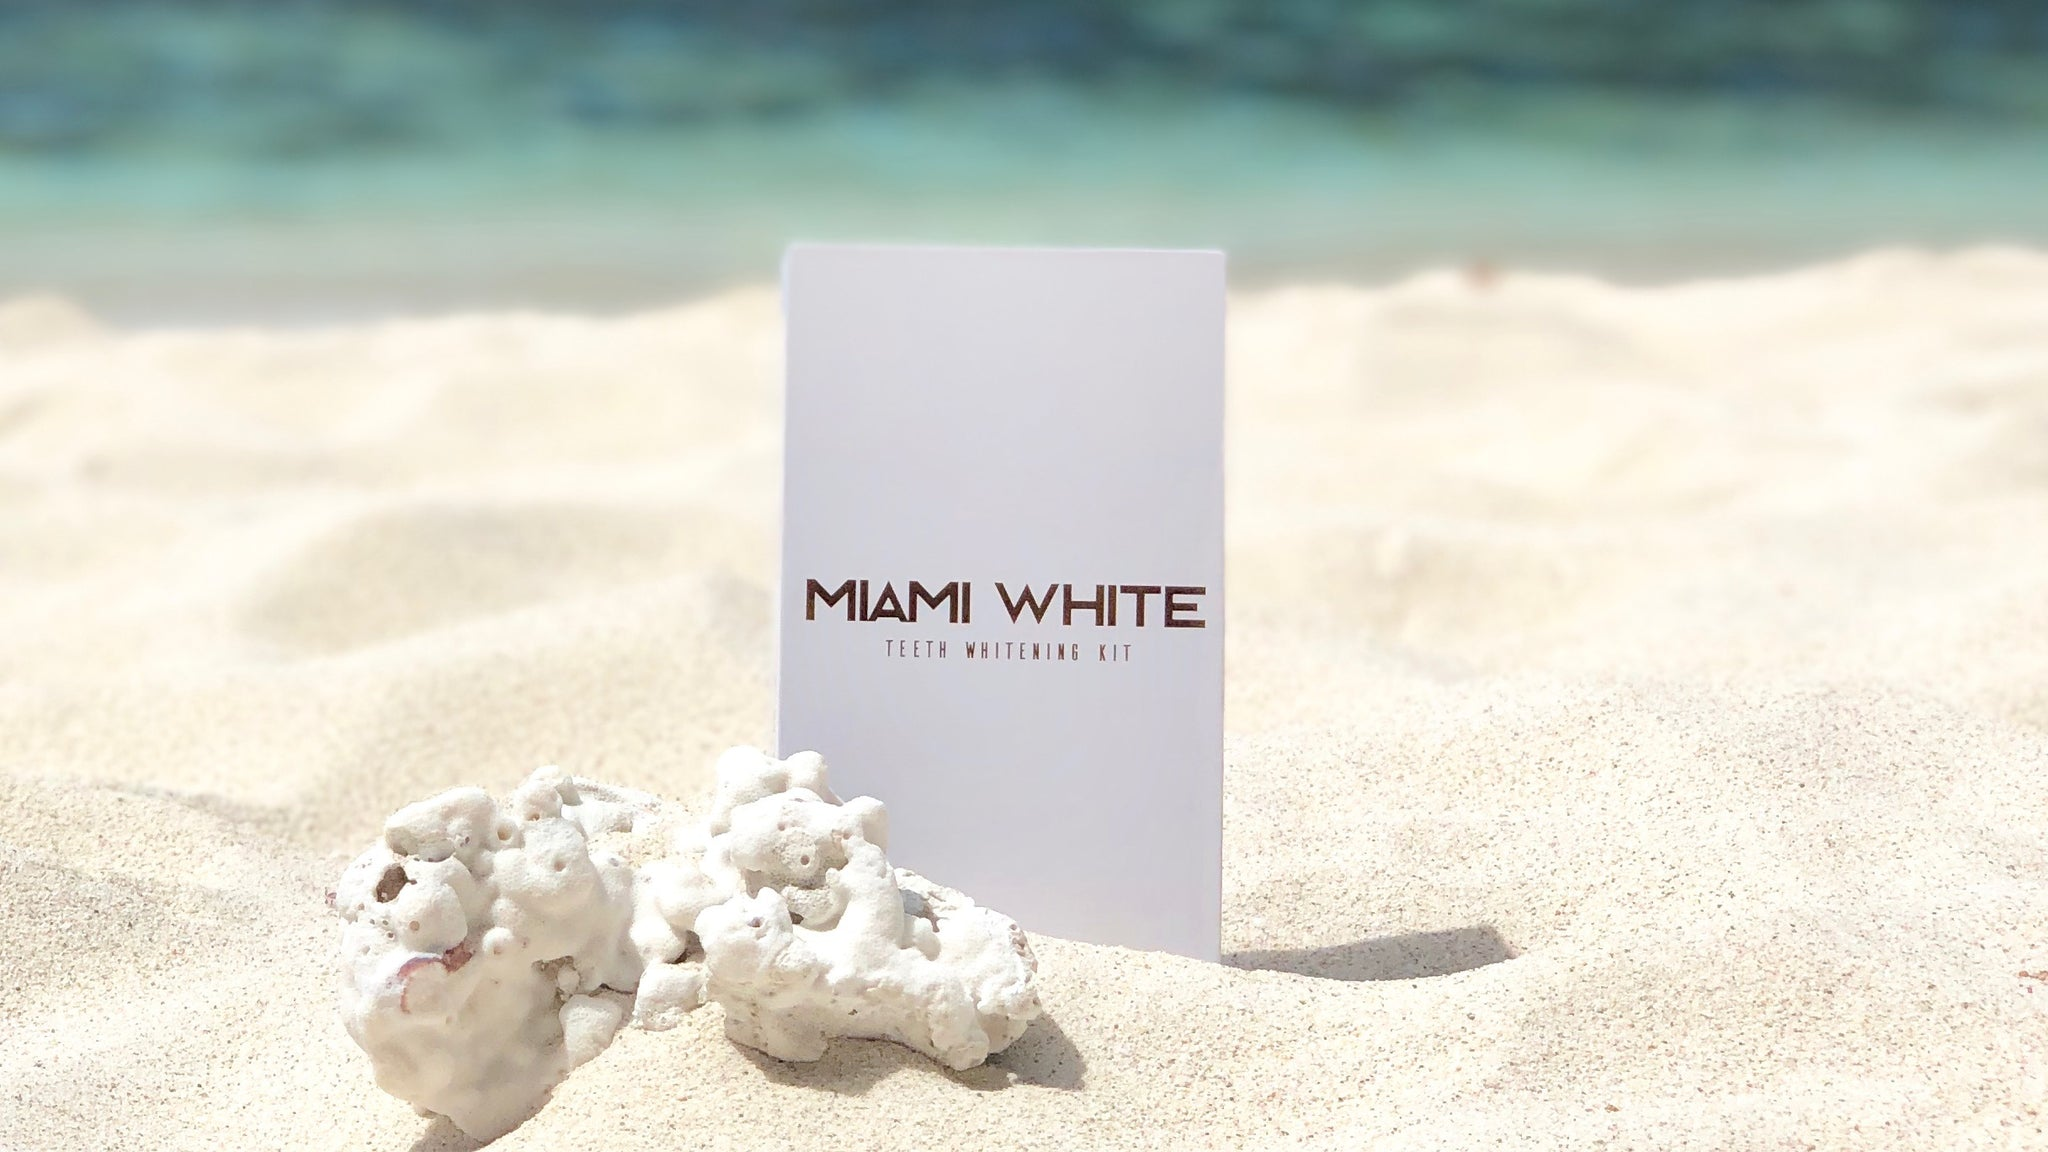 Miami white teeth whitening kit on a beach in el nido